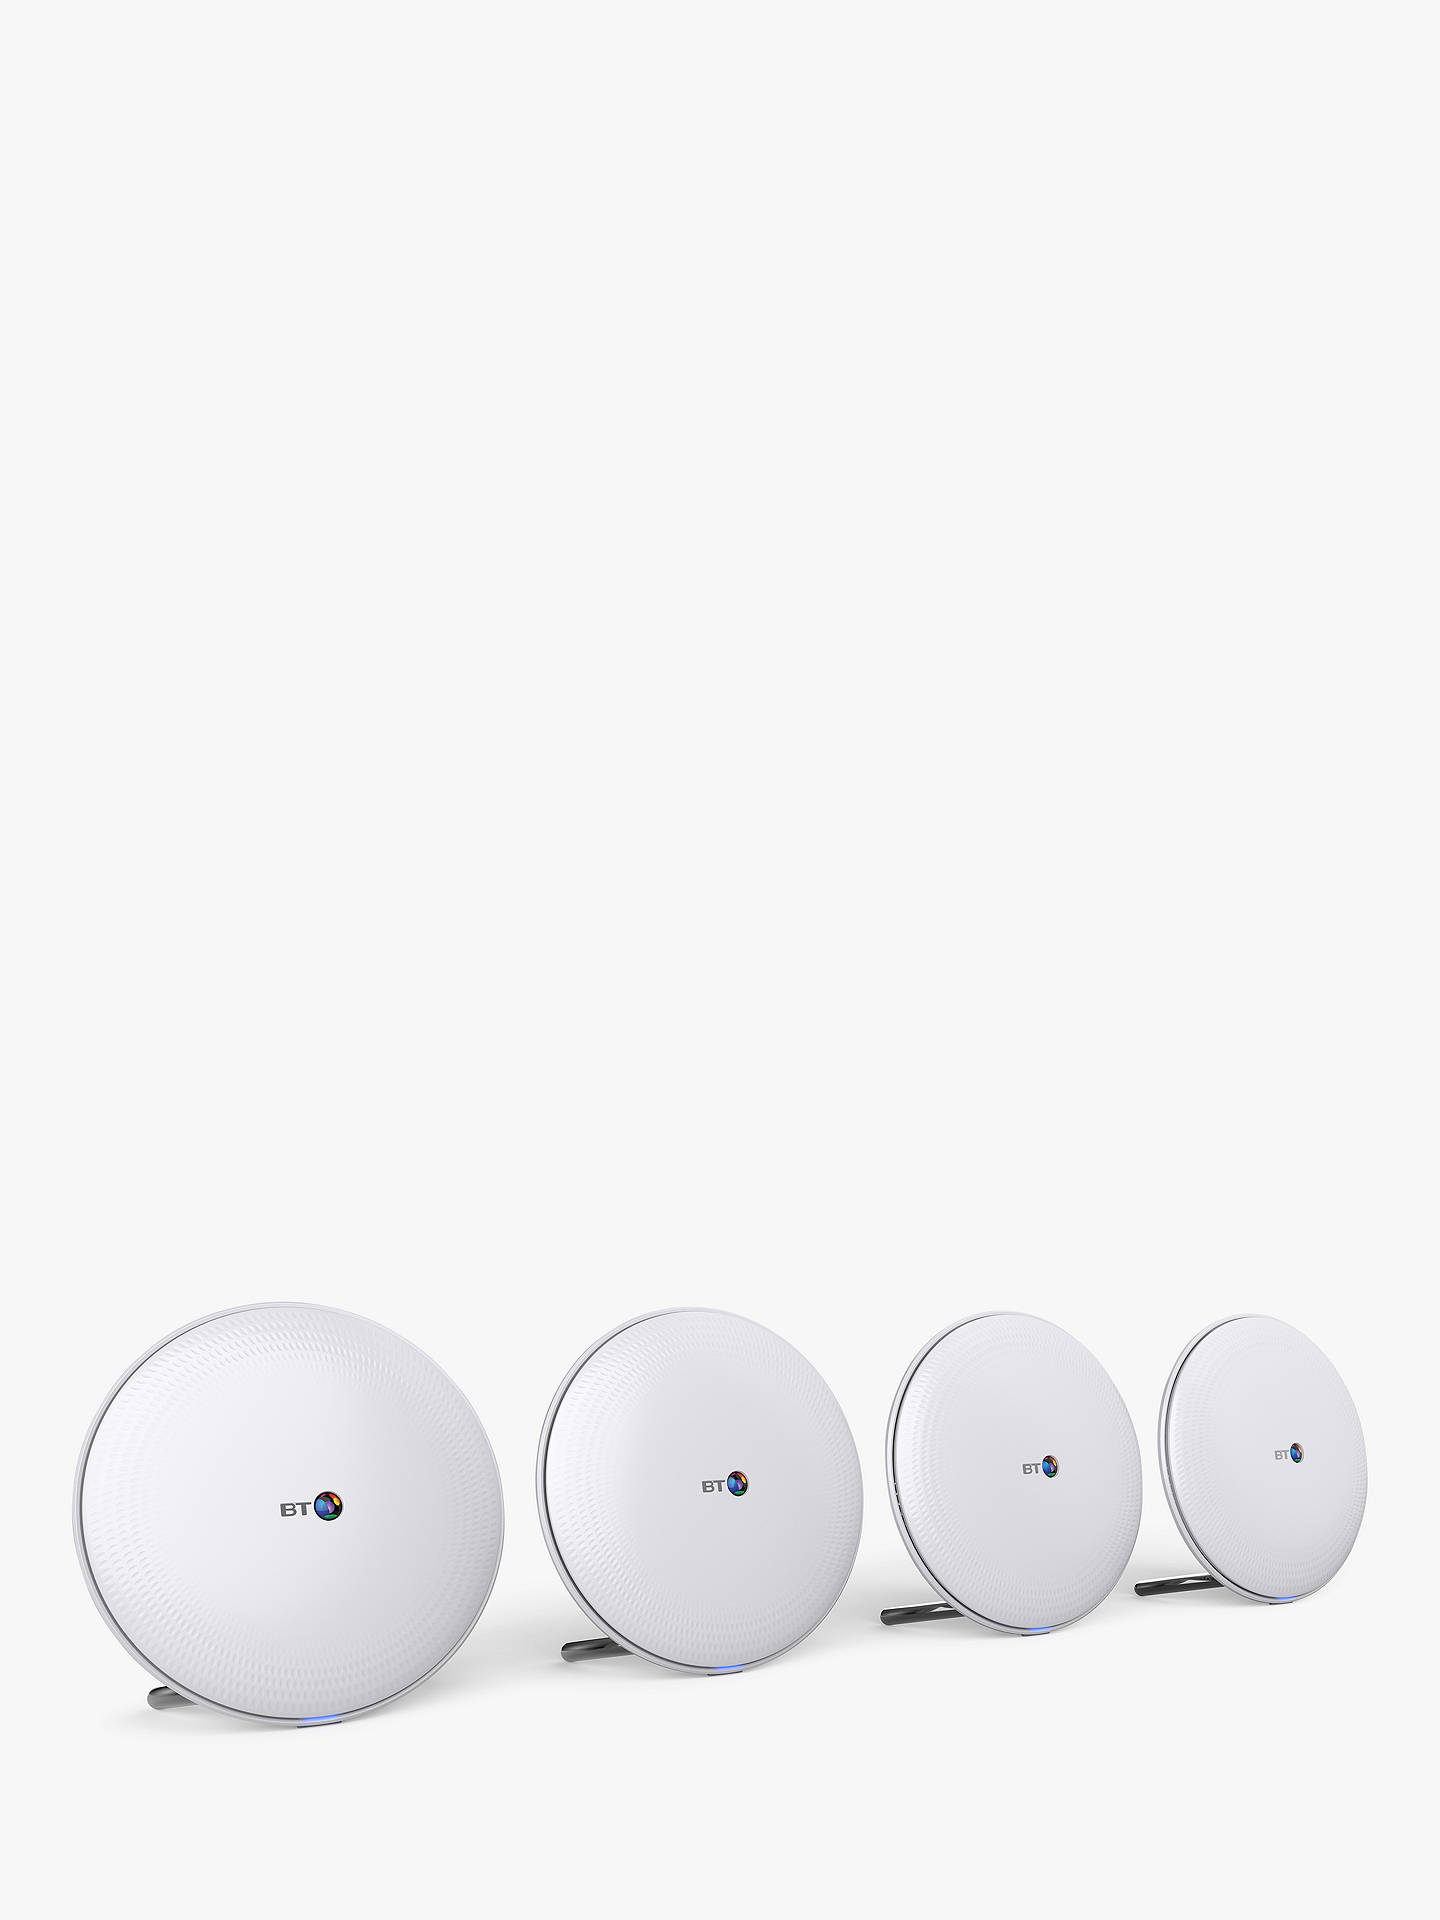 Buy BT Whole Home Wi-Fi Range Extender, White, Pack of 4 Online at johnlewis.com